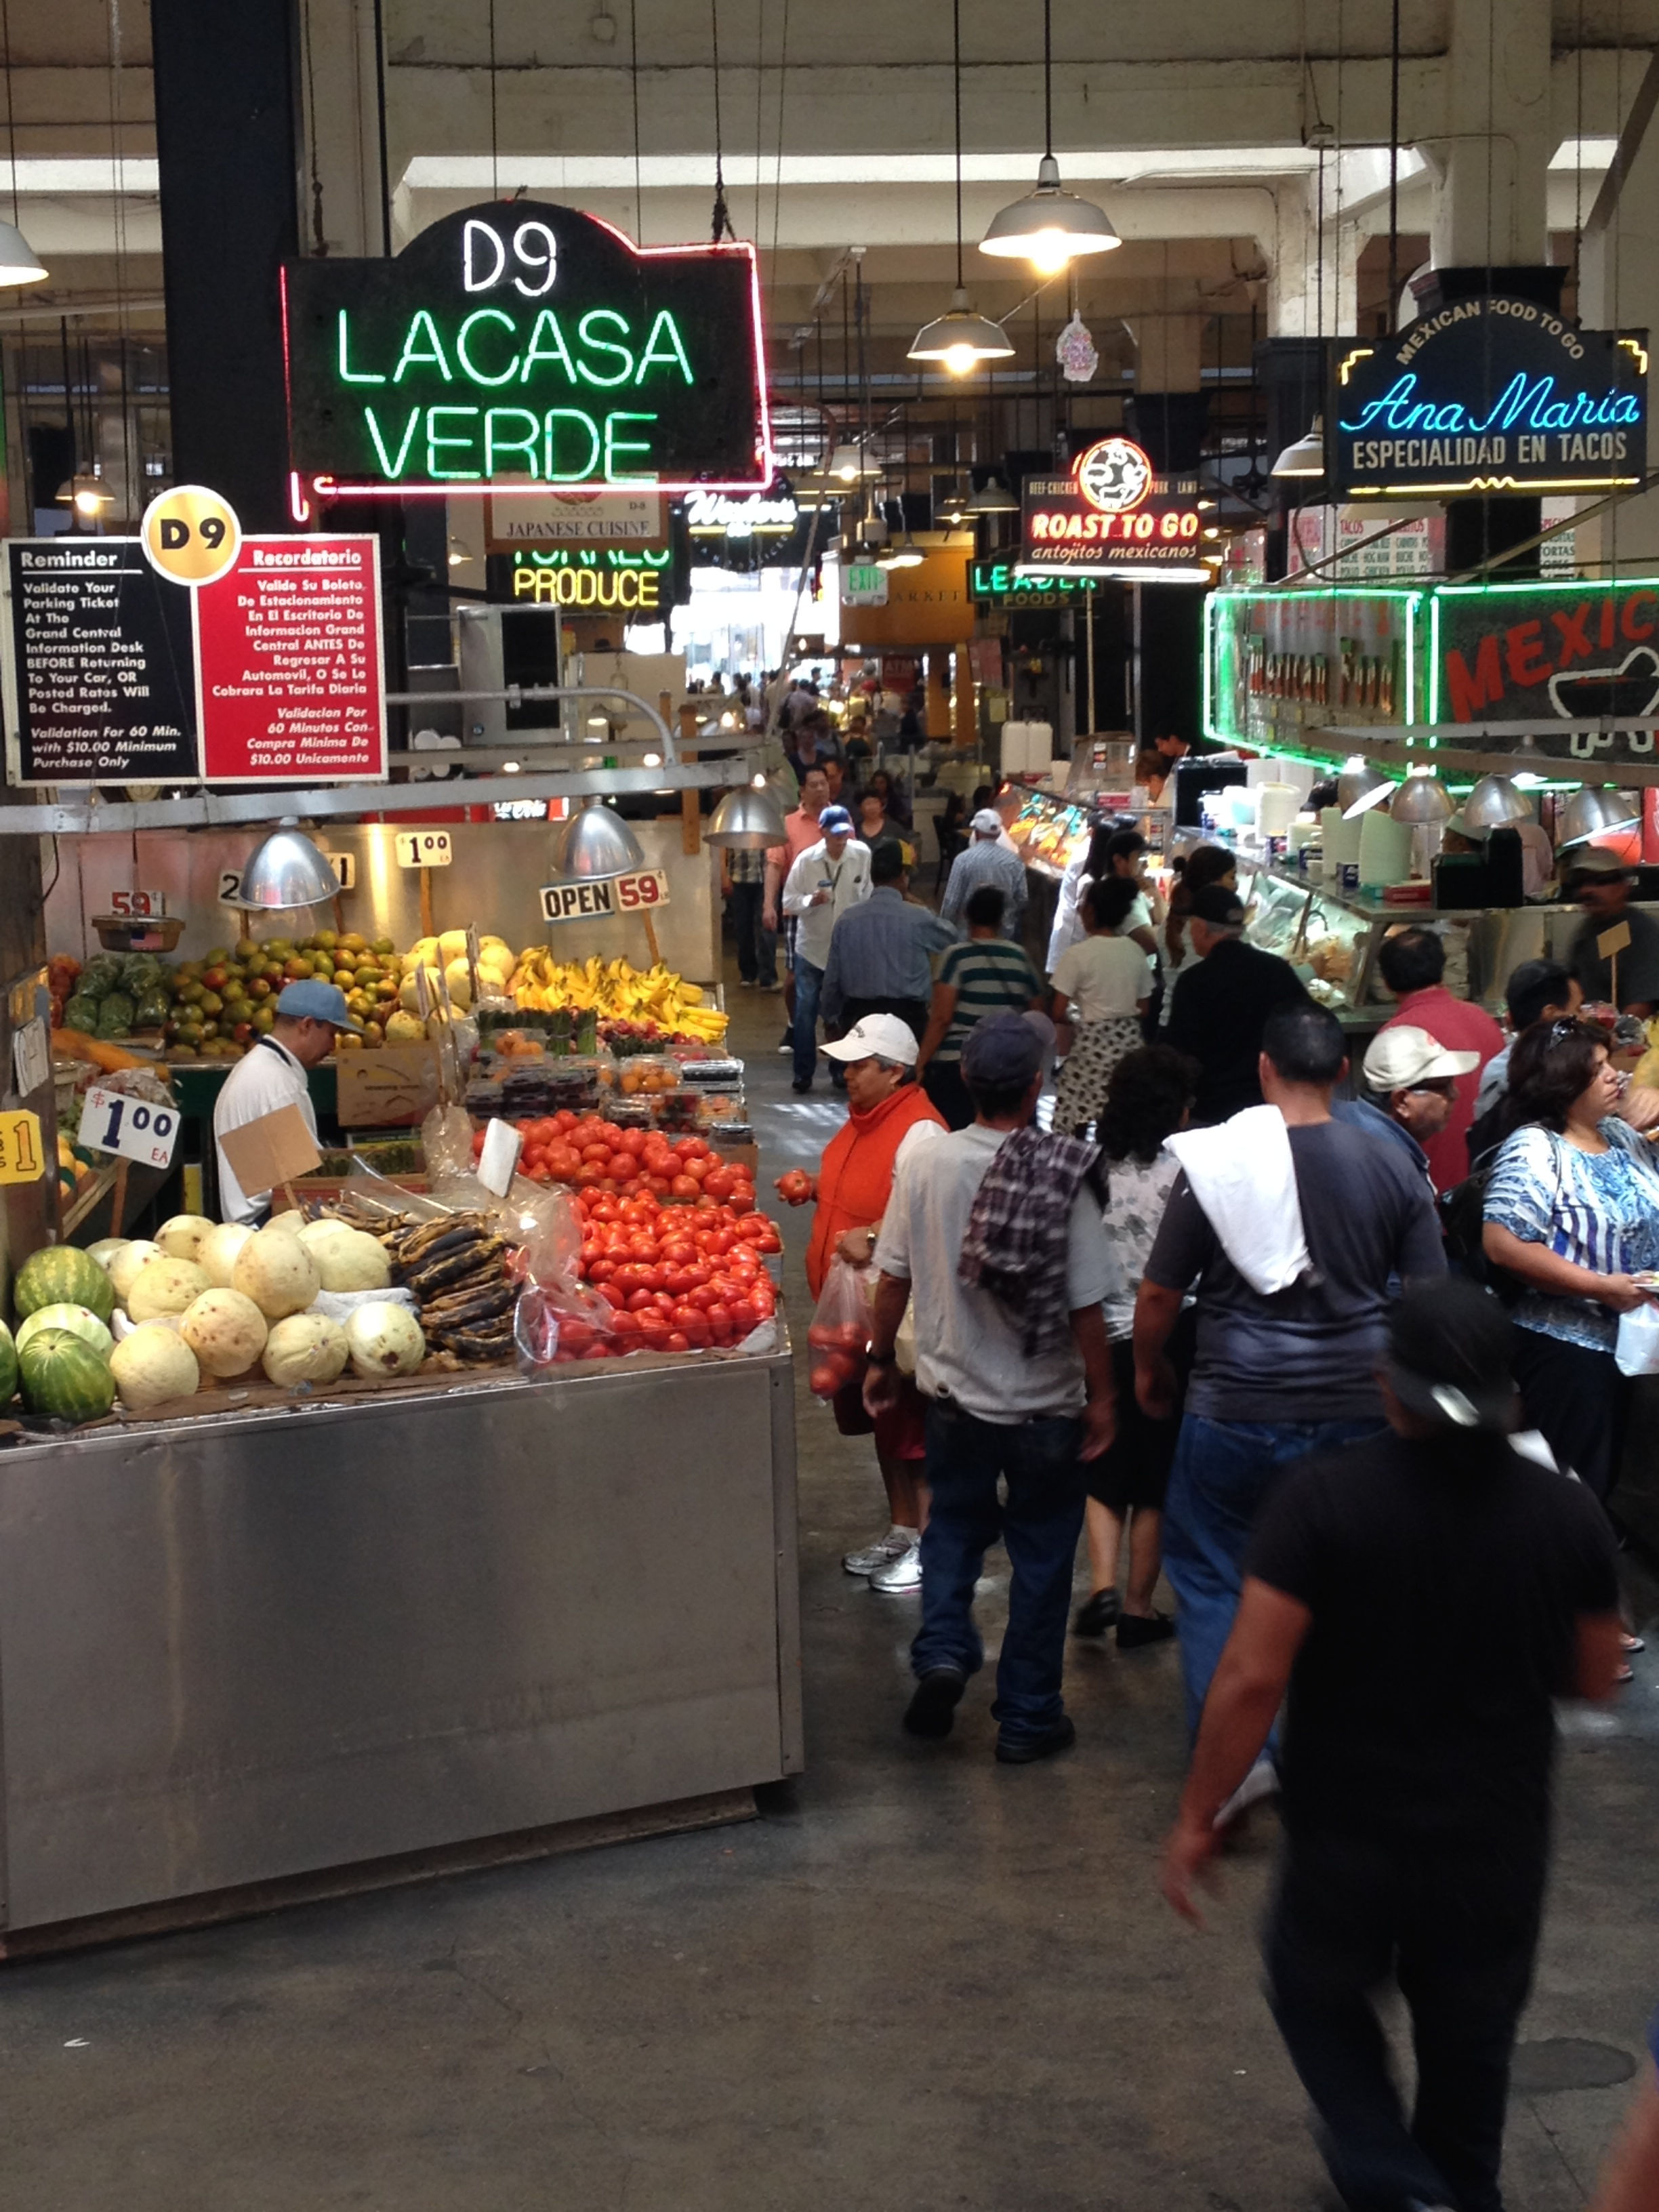 La Casa Verde, which sells local seasonal fruits and vegetables.